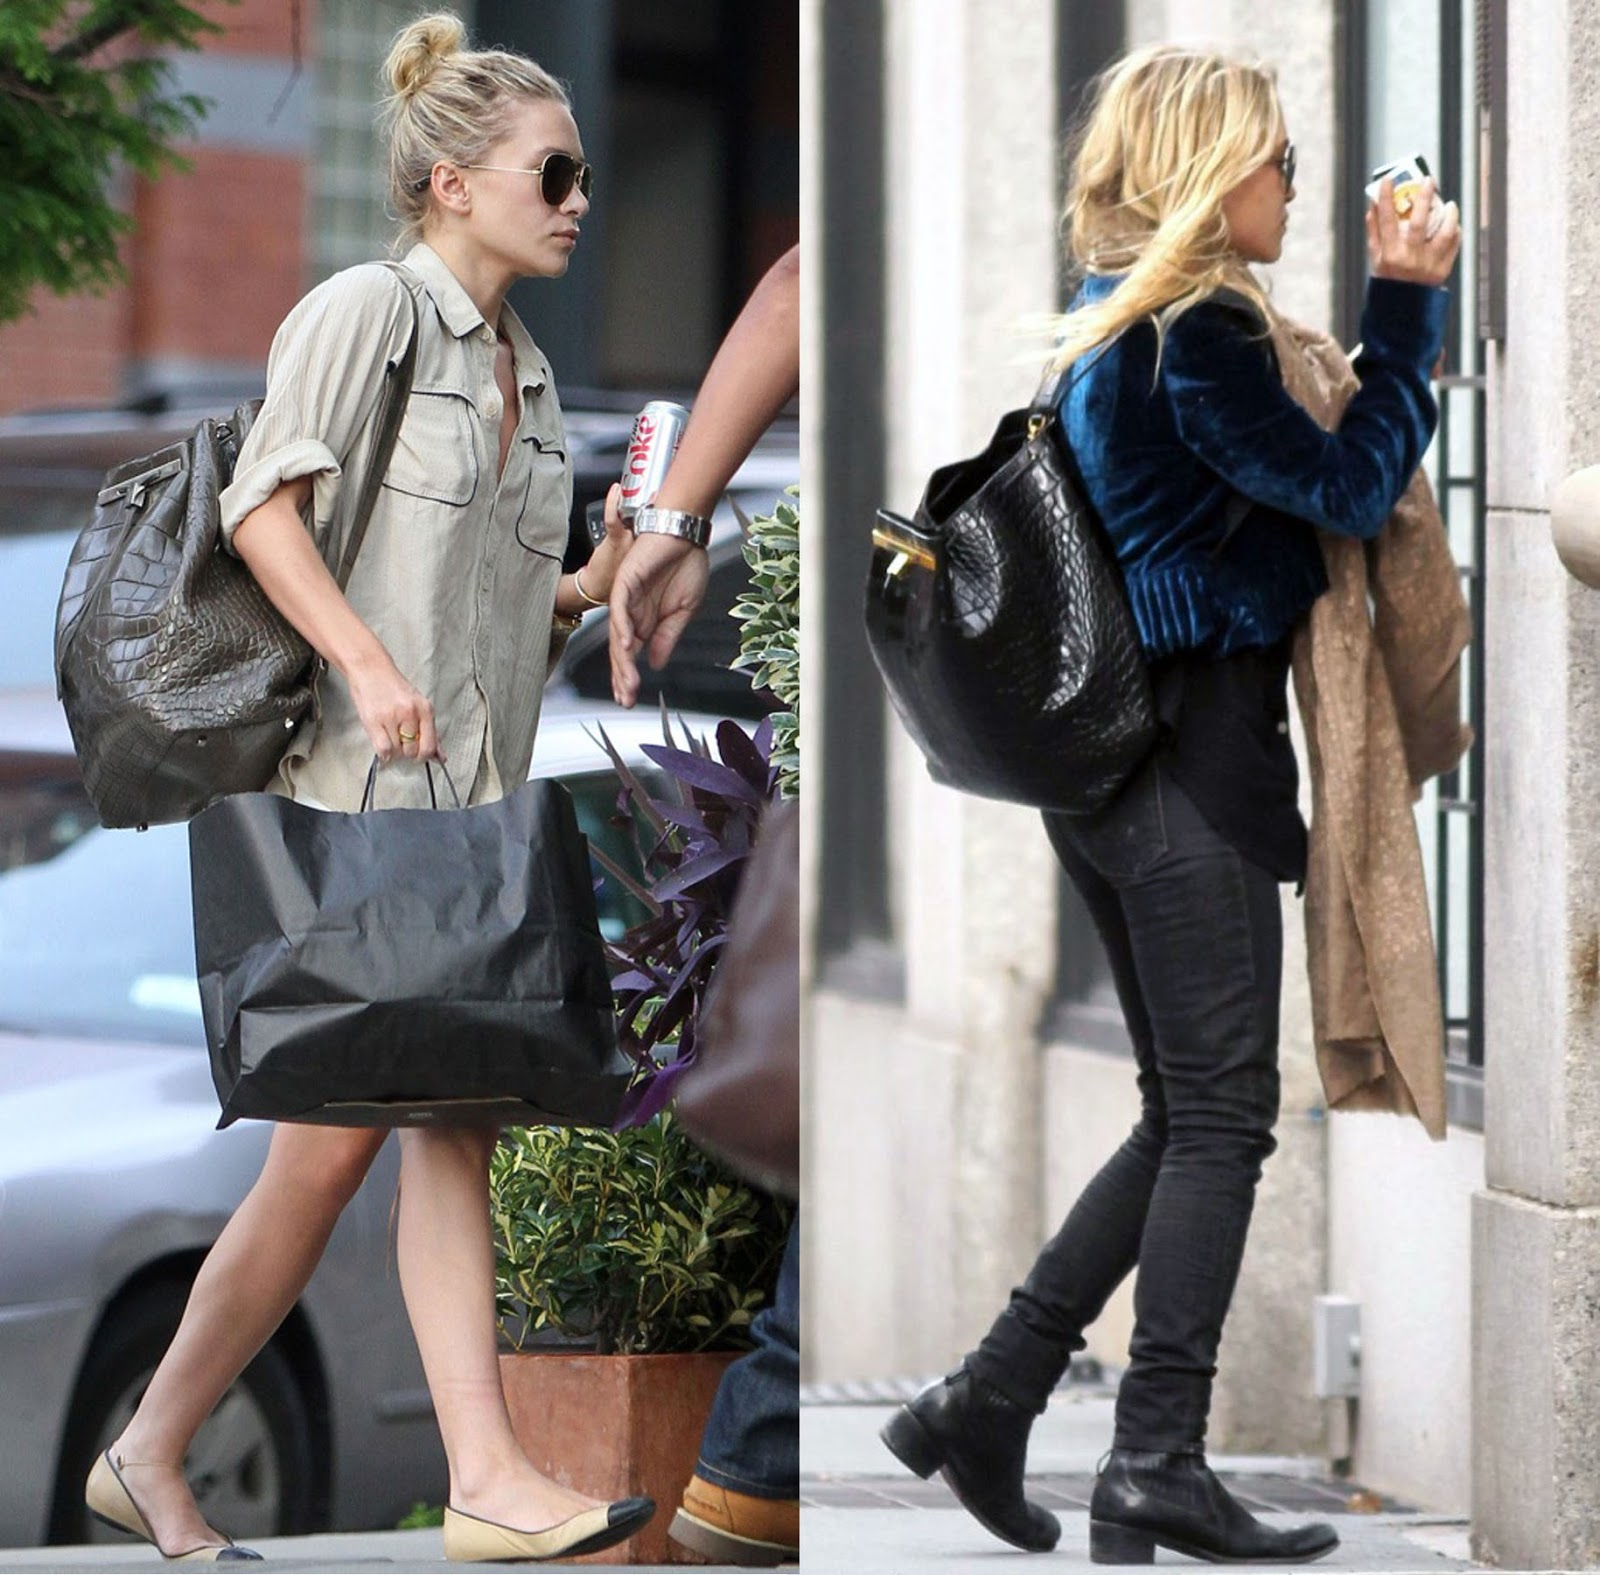 http://1.bp.blogspot.com/-xn6zPfTNh_M/UQ6cZ3jCpdI/AAAAAAAAgSc/aMX1og2GngE/s1600/la-modella-mafia-Ashley-Olsen-and-Mary-Kate-Olsen-carrying-The-Row-backpack.jpg